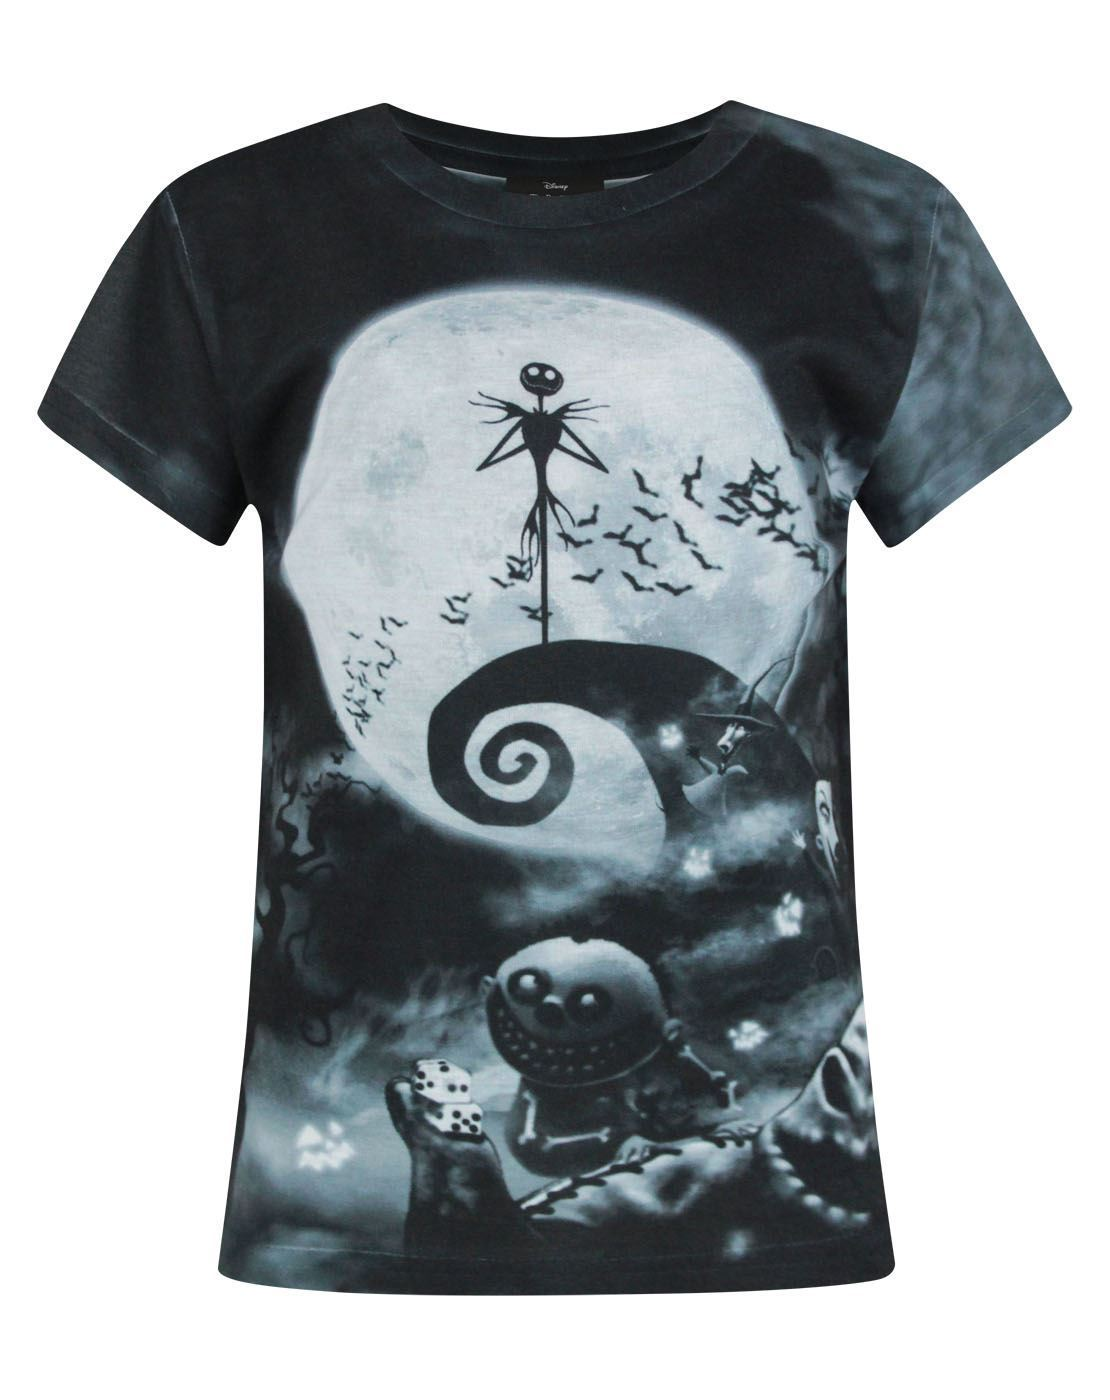 Nightmare Before Christmas Characters Sublimation Girl's T-Shirt